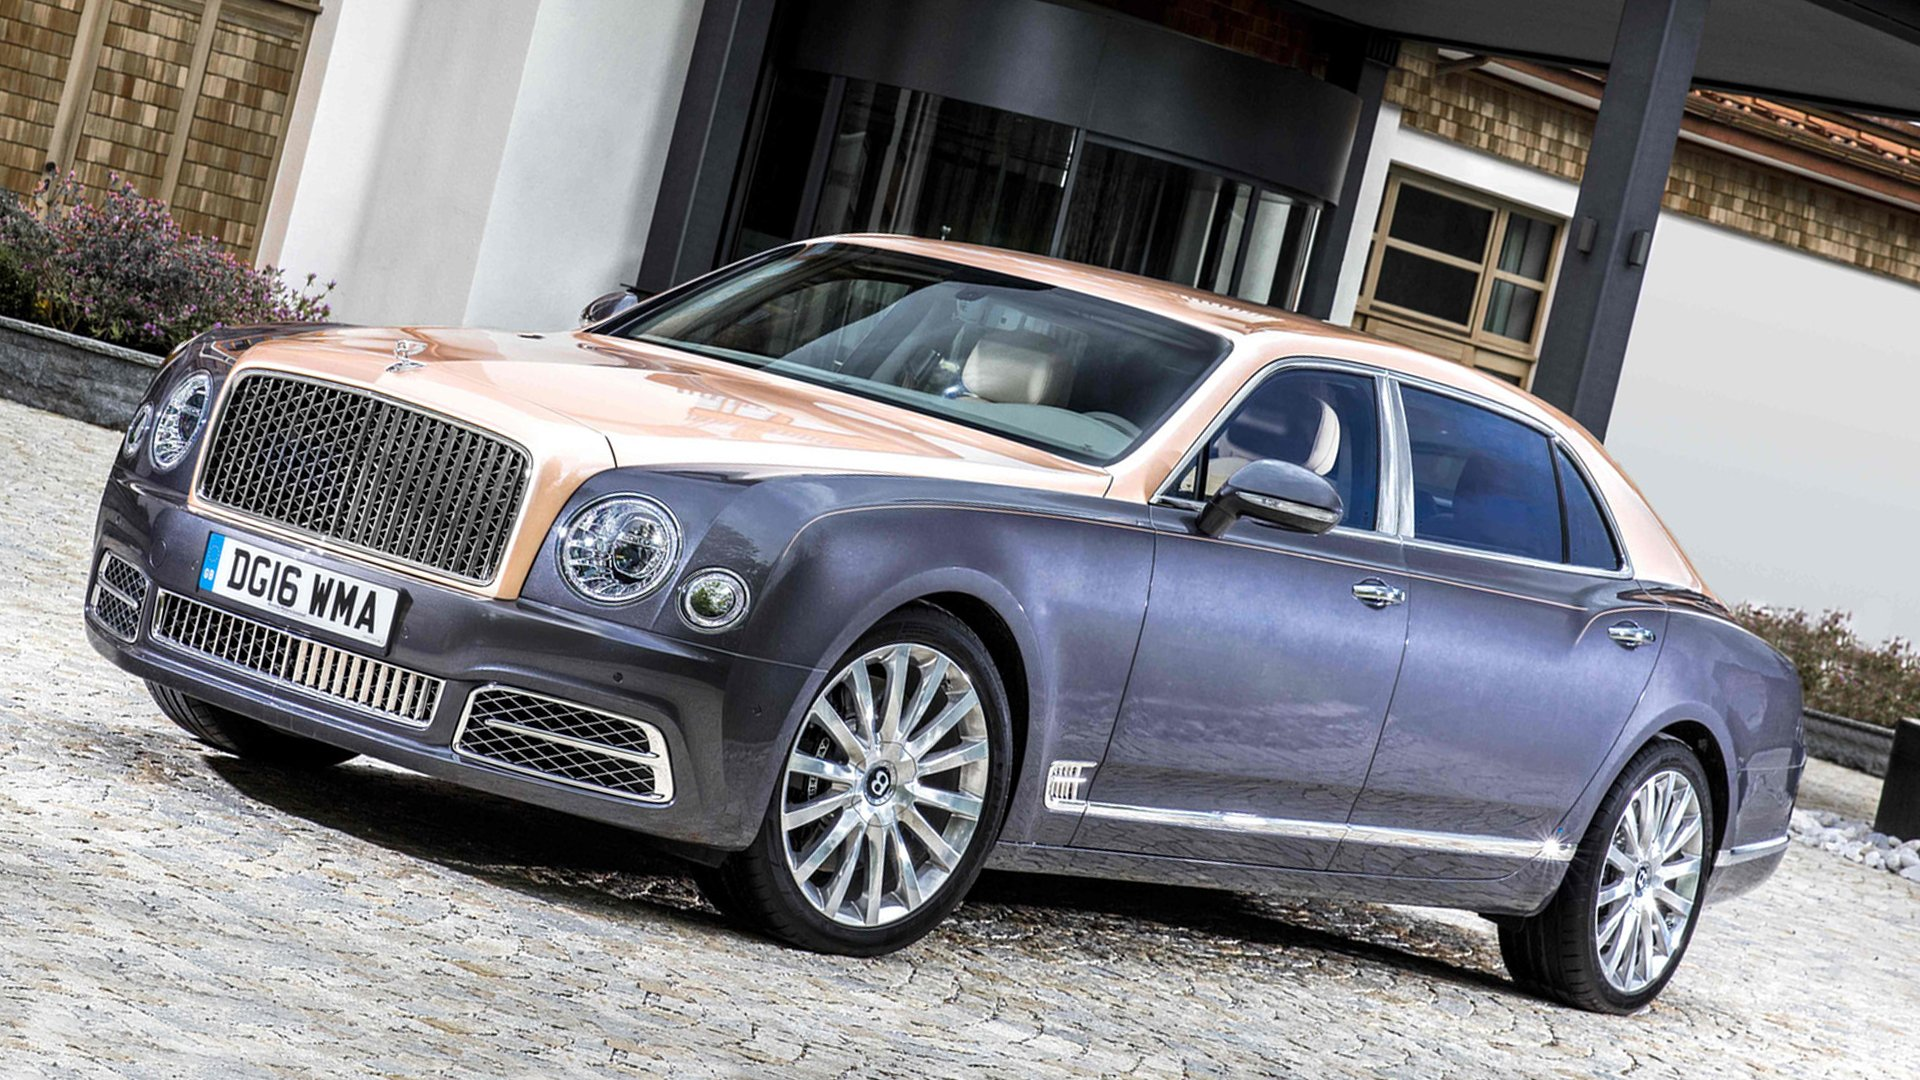 Turbo Bentley Mulsanne Full HD